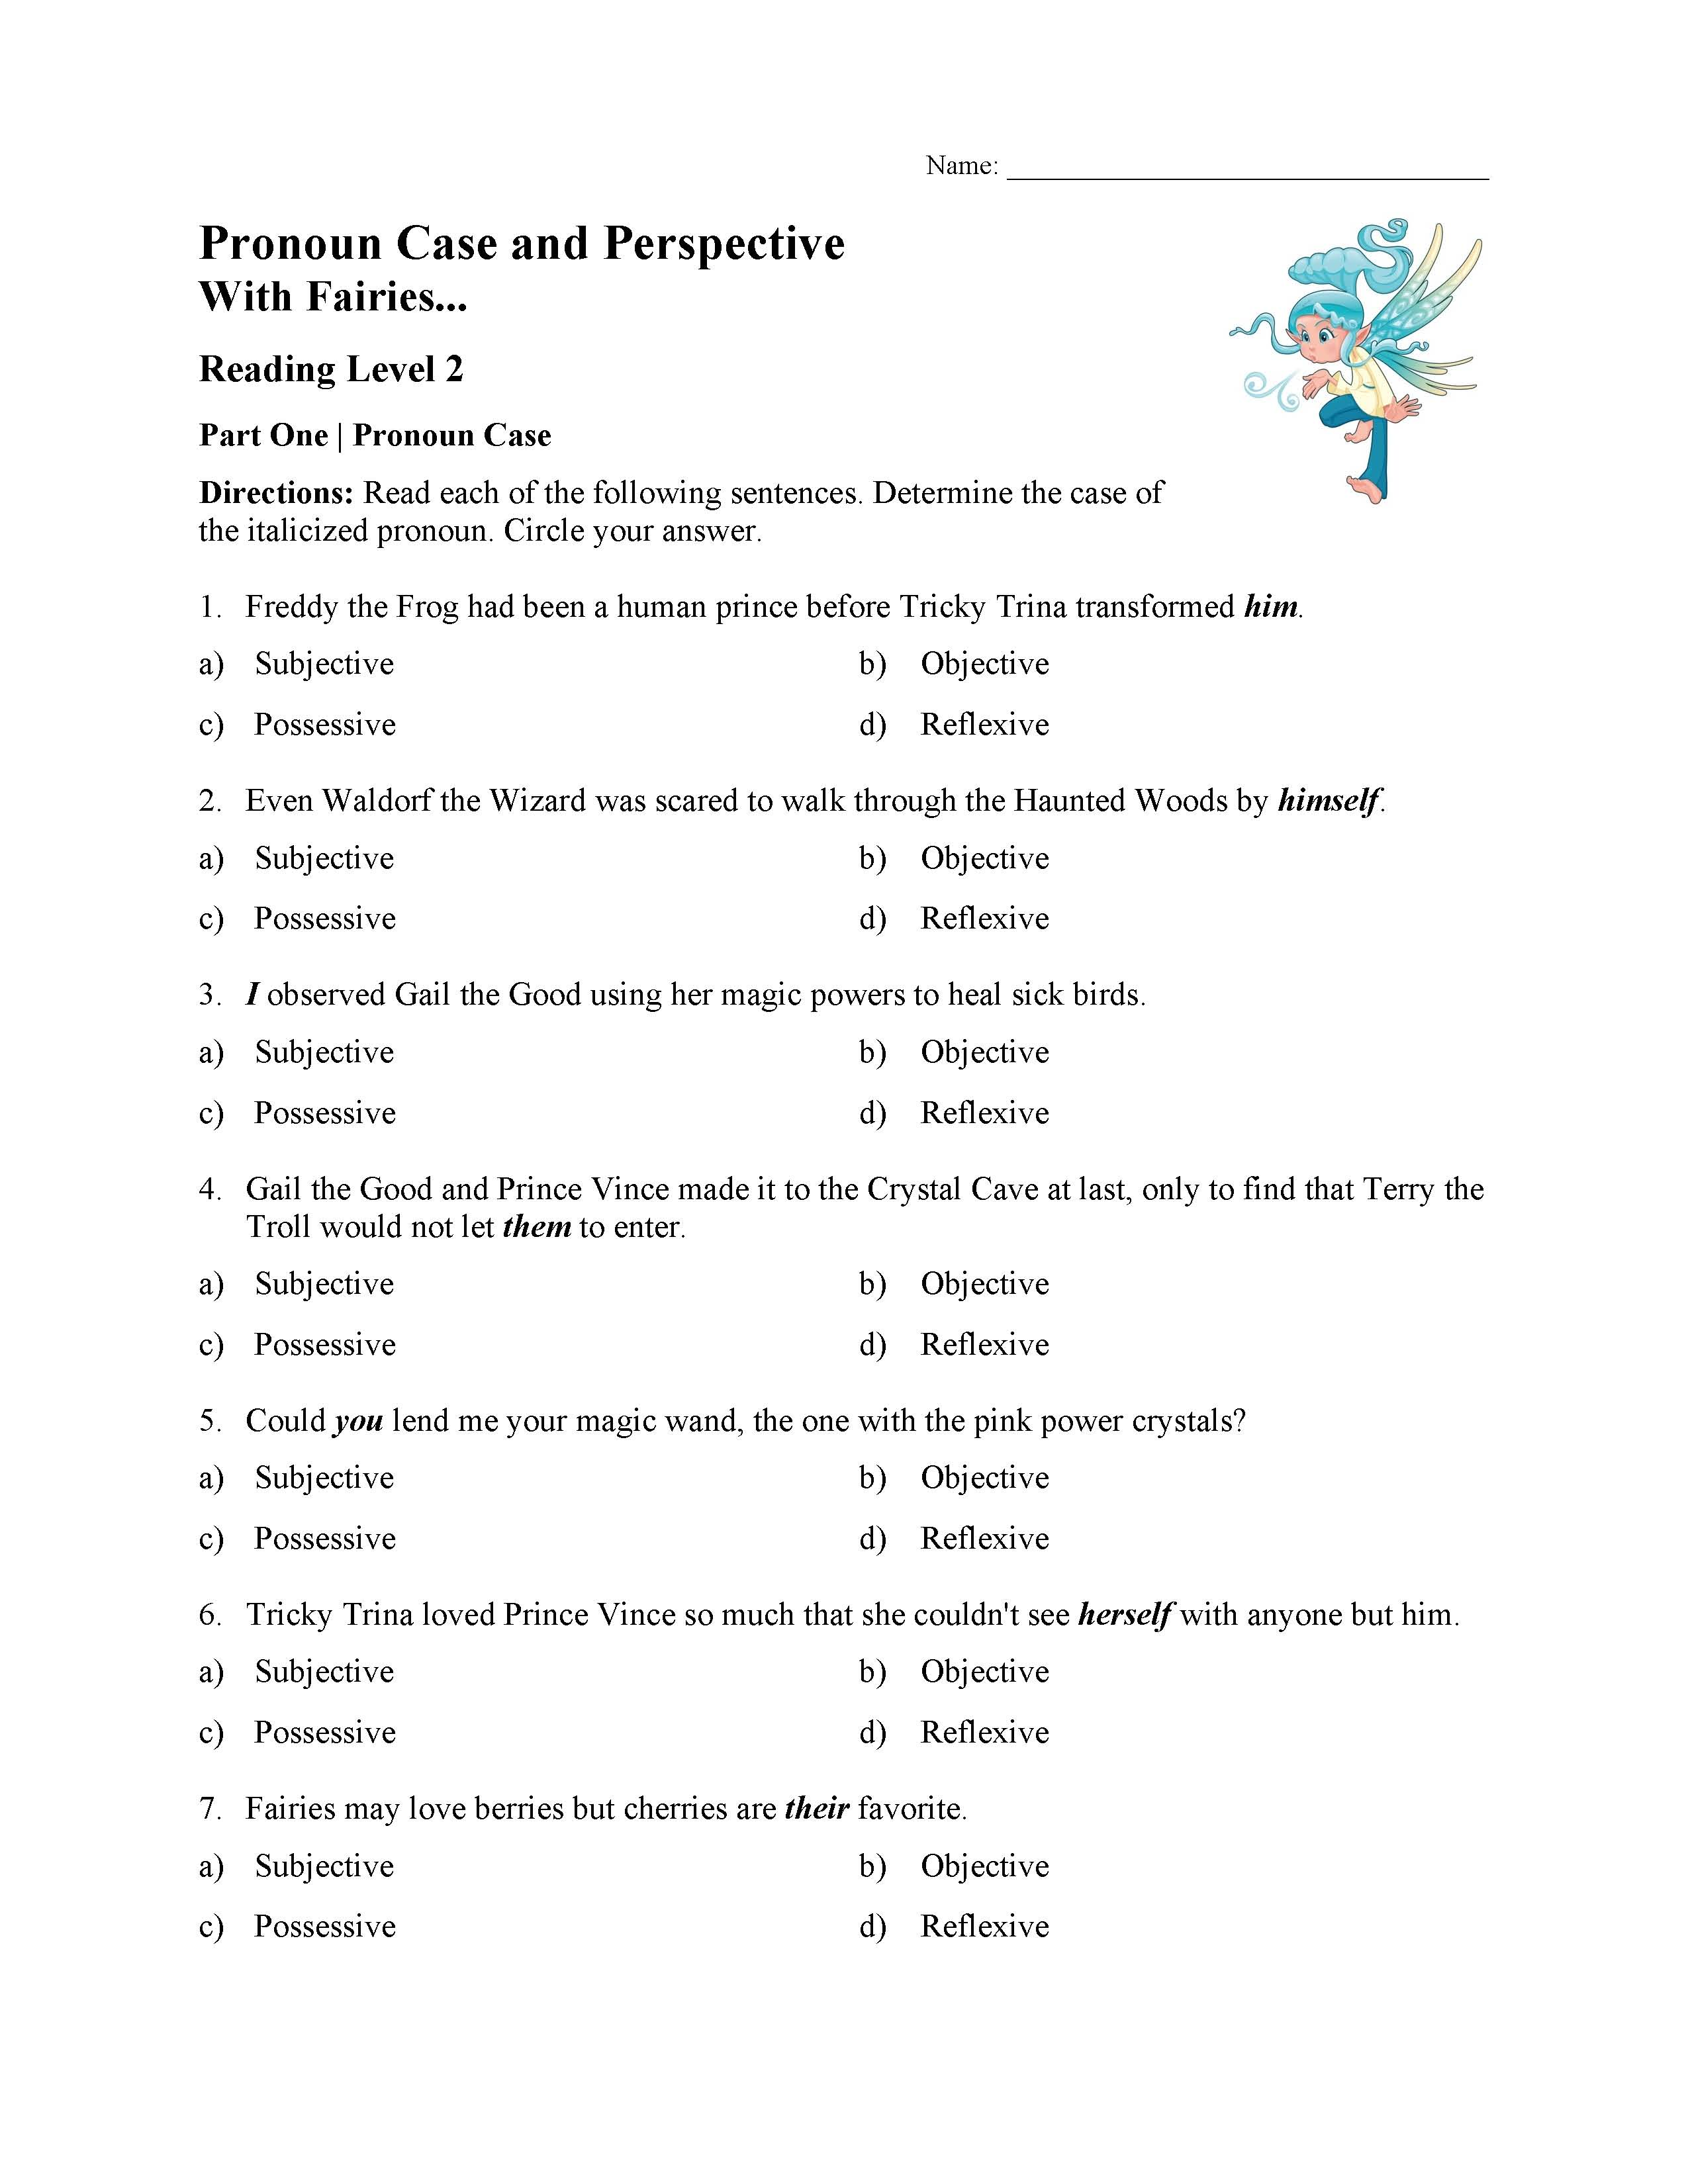 Pronoun Case And Perspective Test